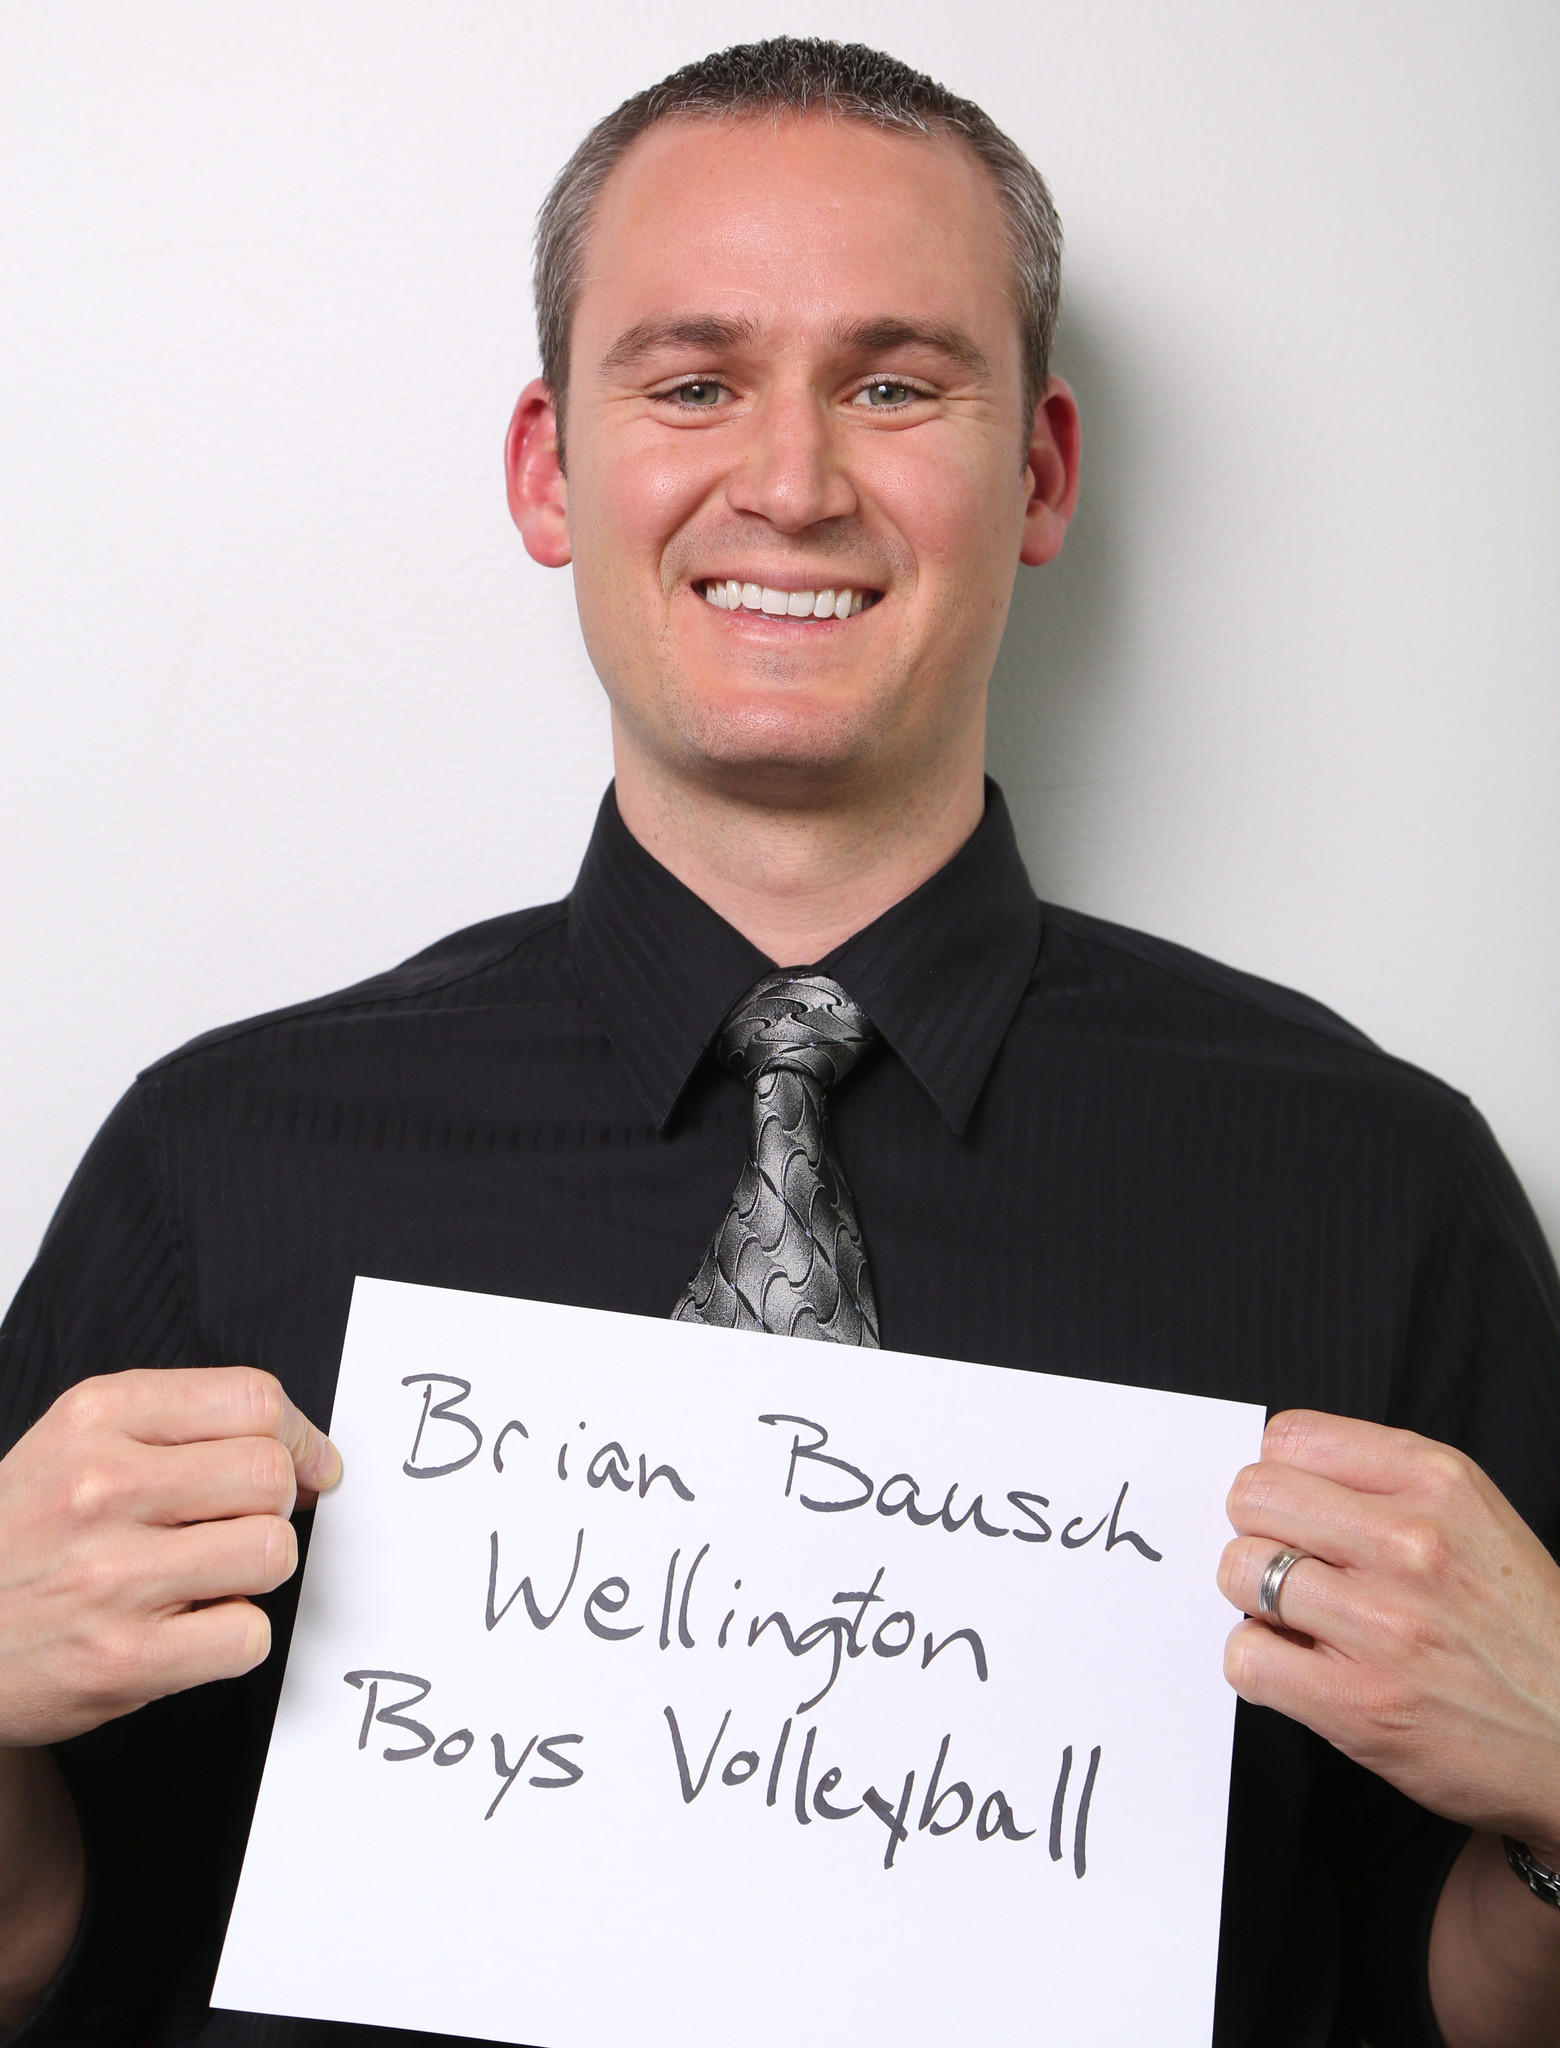 Wellington's Brian Bausch is the Boys Volleyball Coach of the Year